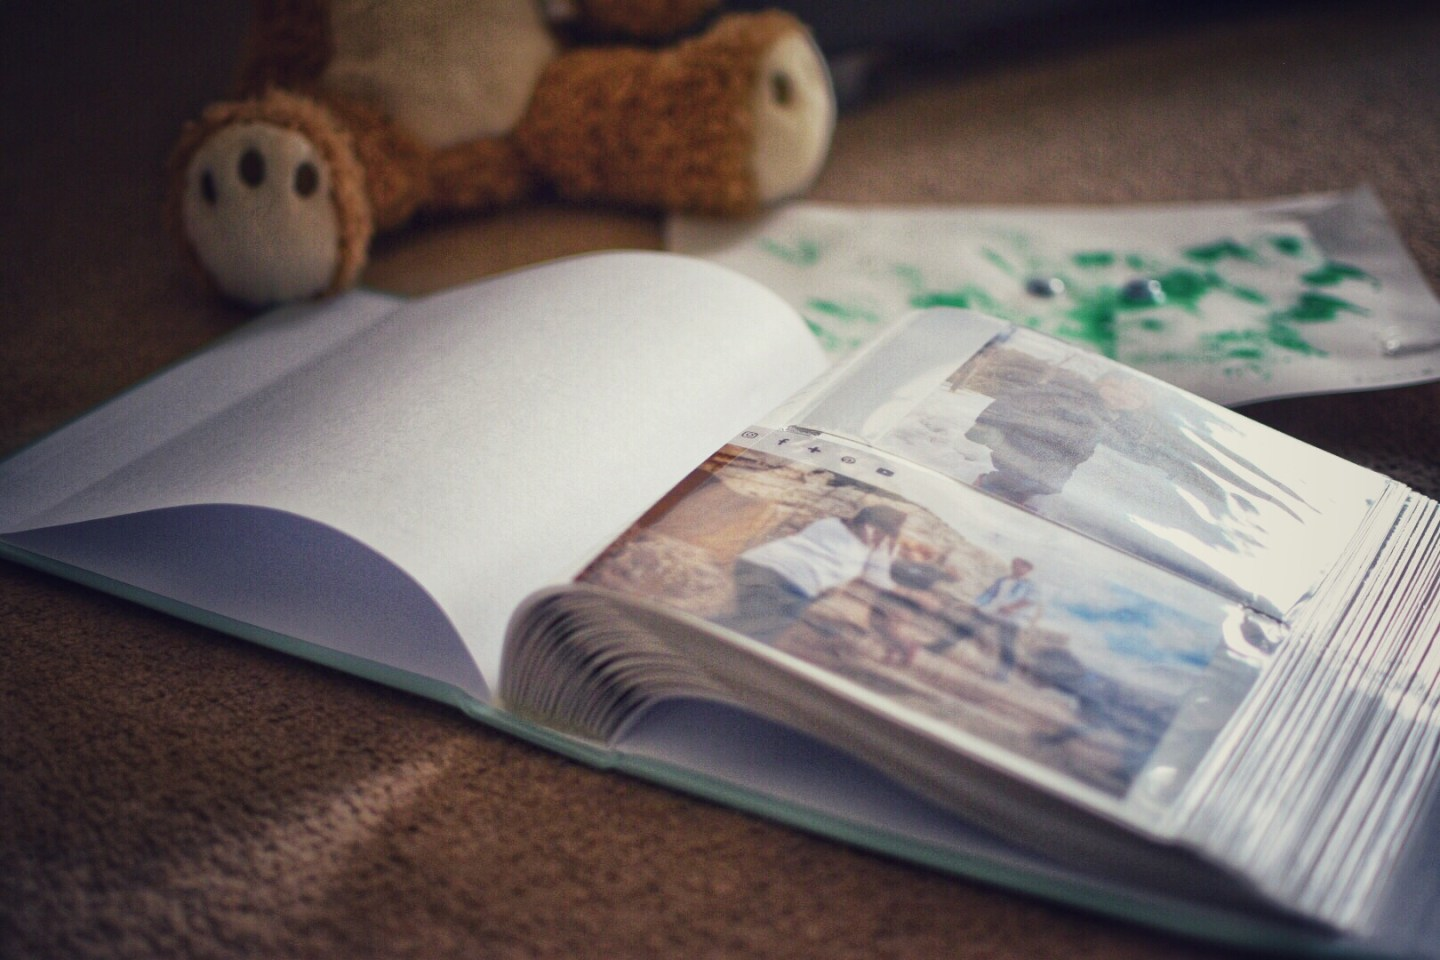 Where do you store your precious memories? The first school drawings, photographs and your child's first teddy?